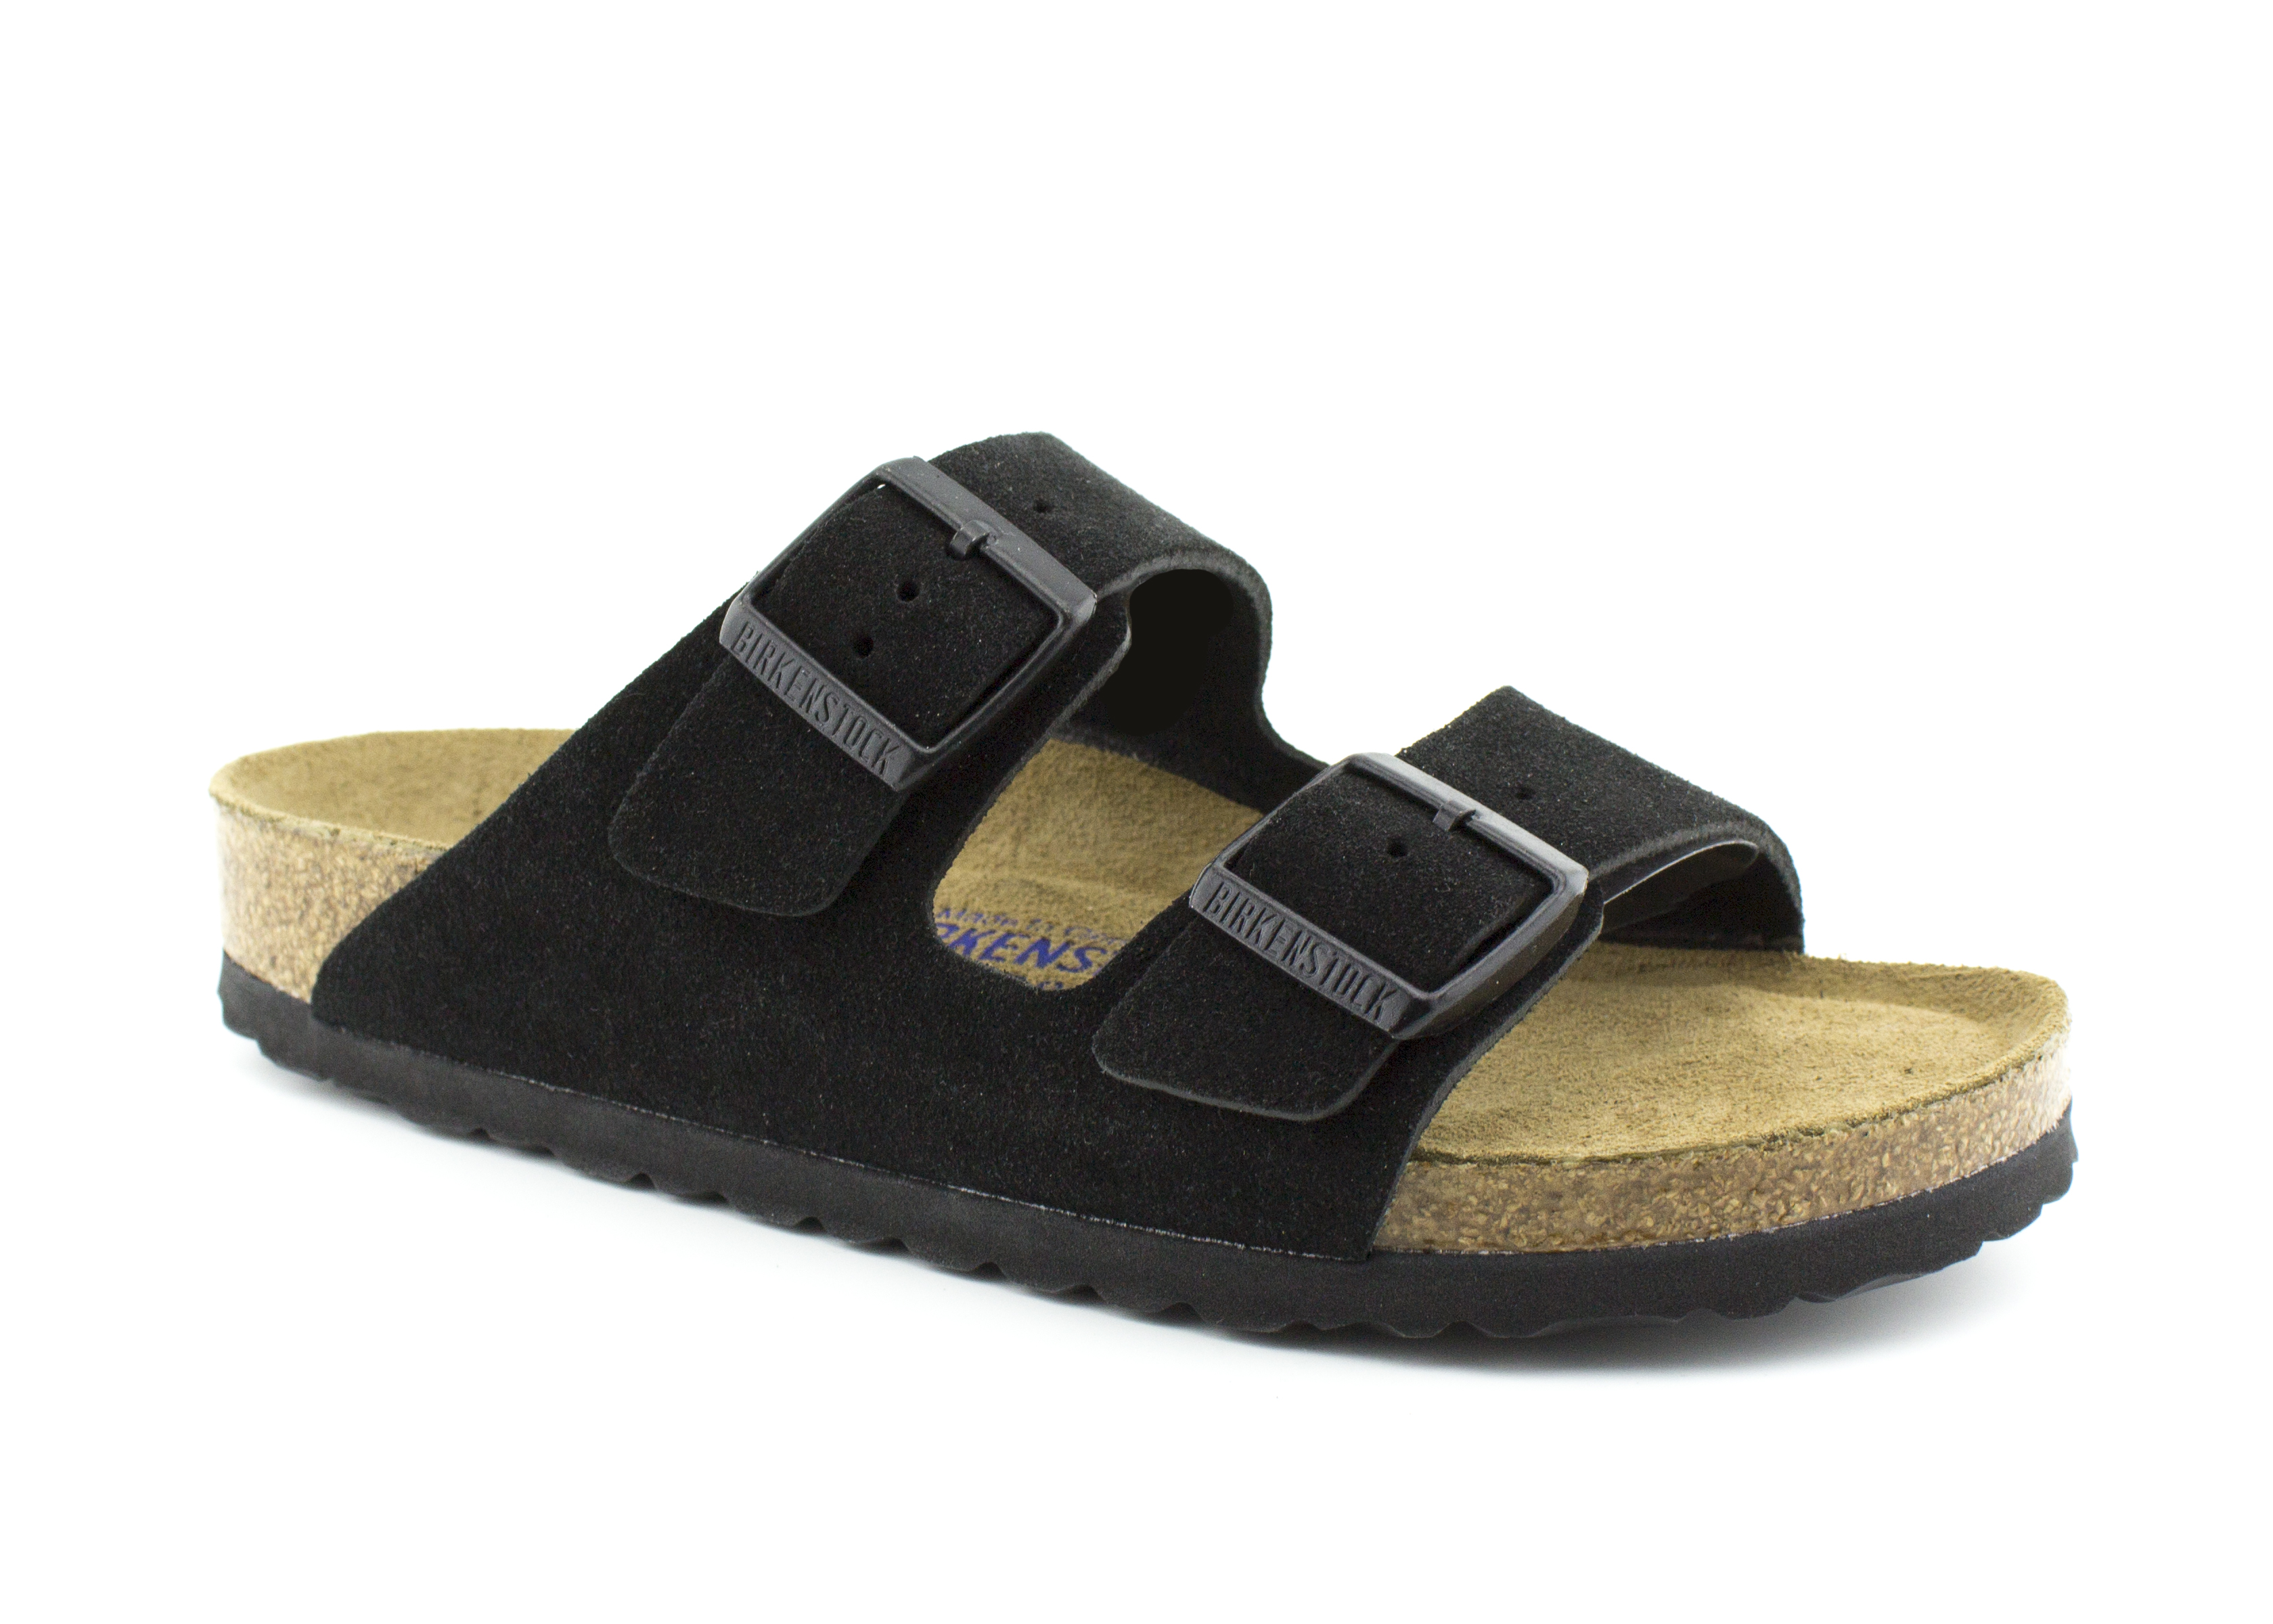 3612b108f4c The Shop. All Products FOOTWEAR - UNISEX SANDALS WITHOUT BACK Birkenstock  ARIZONA ...